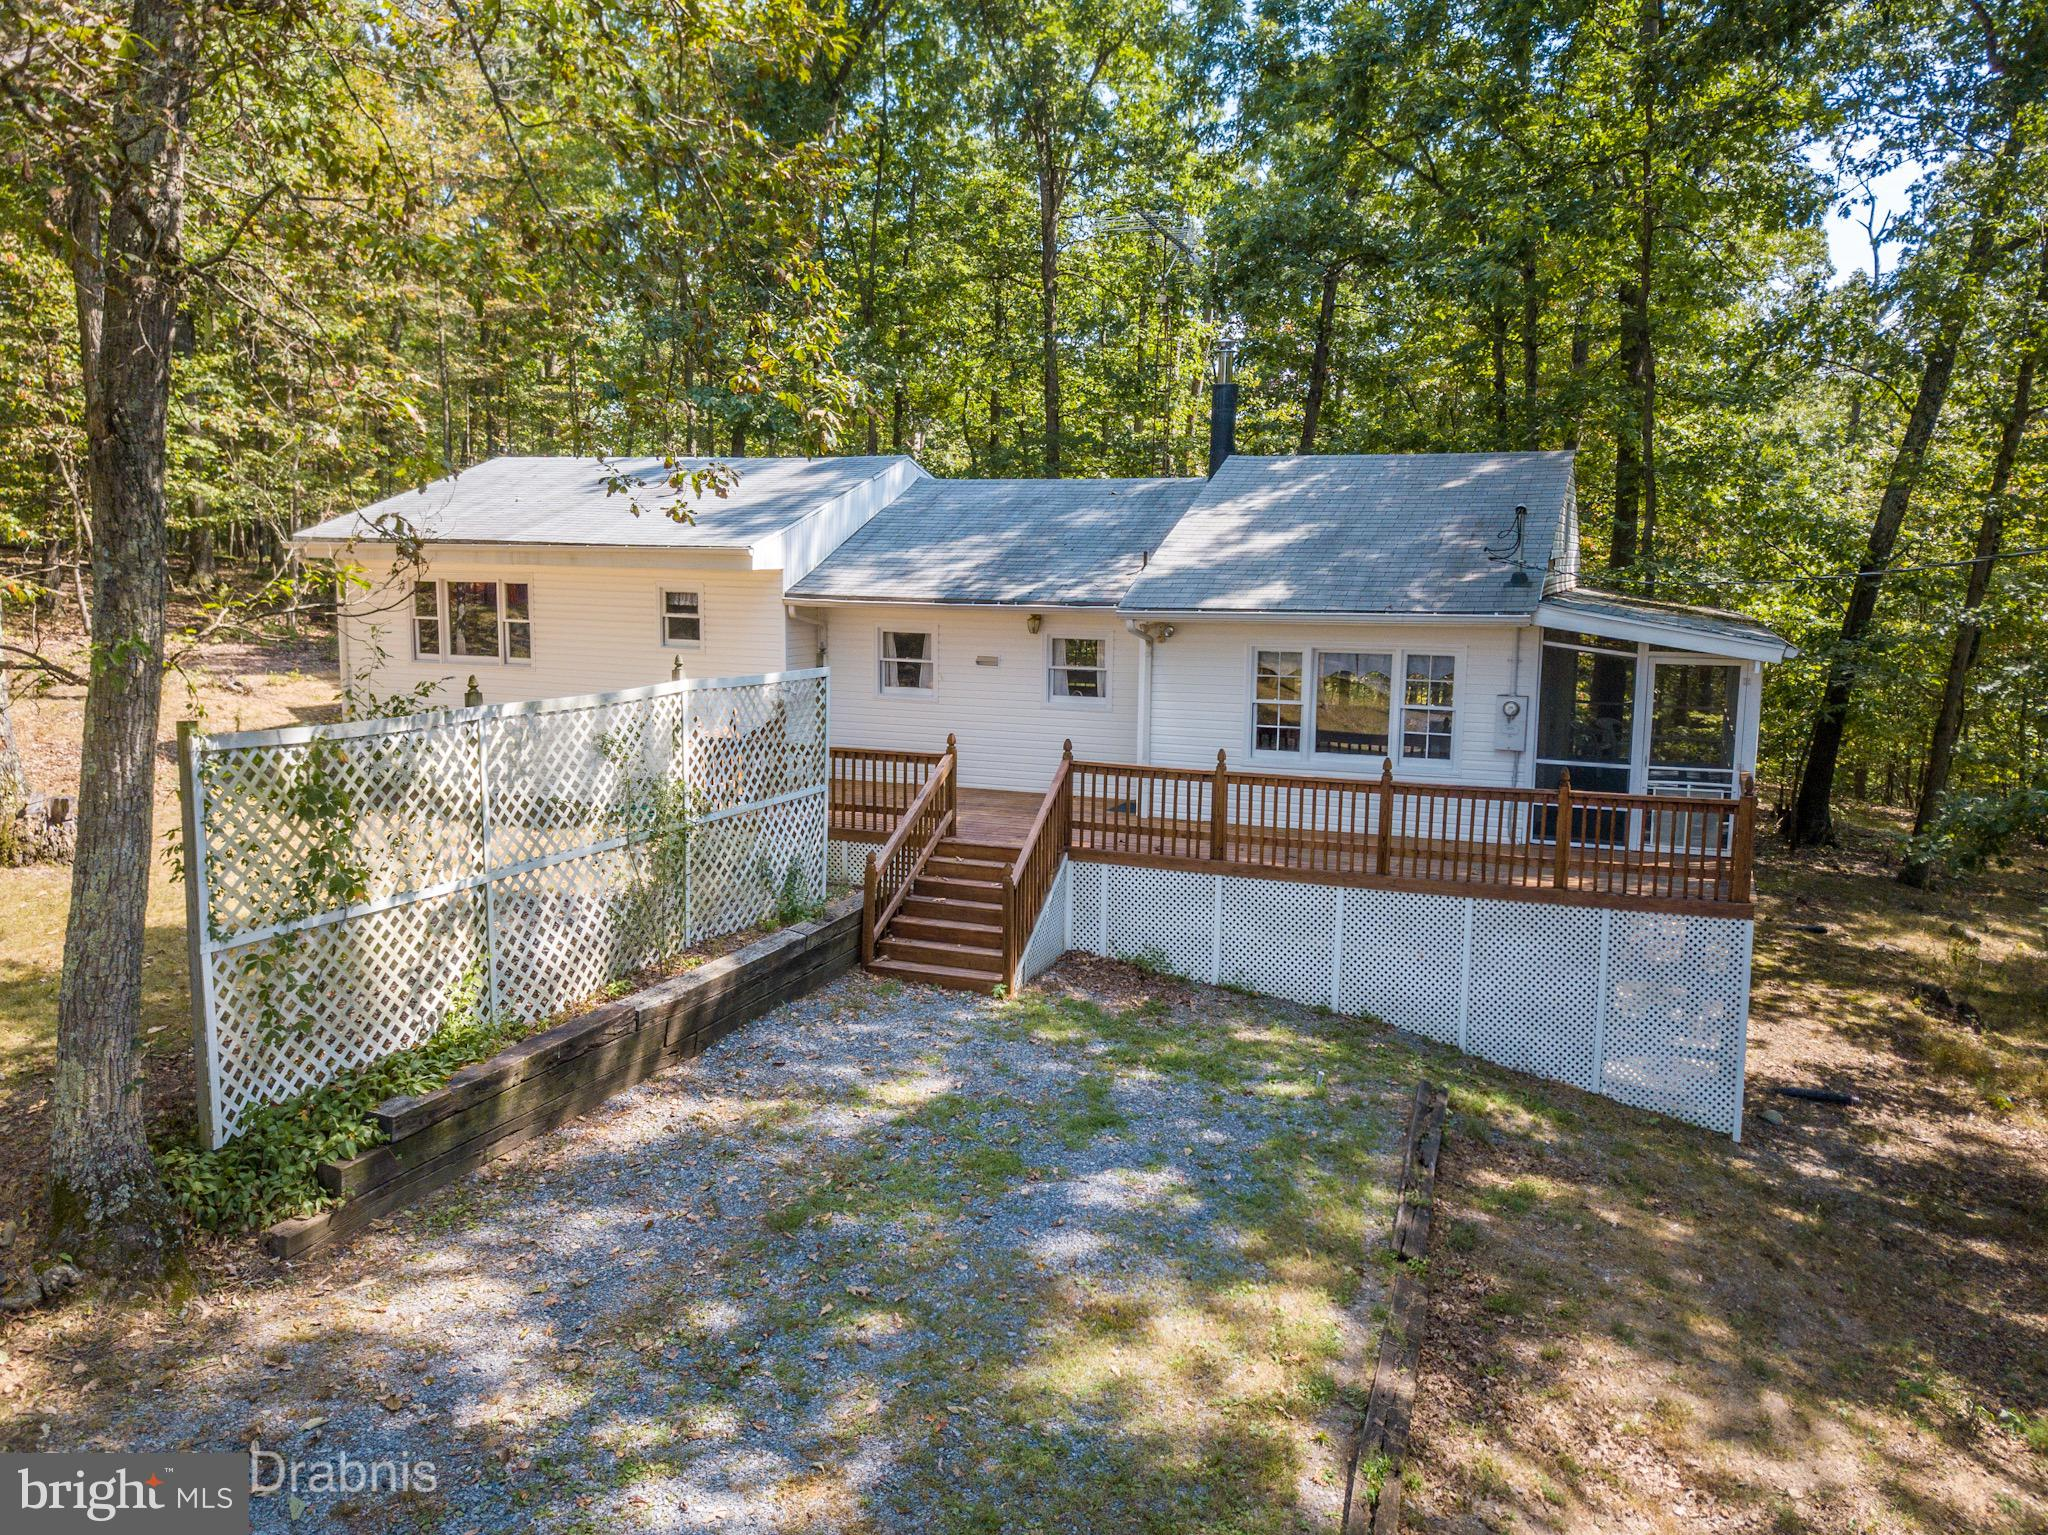 Remodeled 3 bedroom, 2 bath contemporary ranch on 2.64 wooded acres features easy care laminate floo